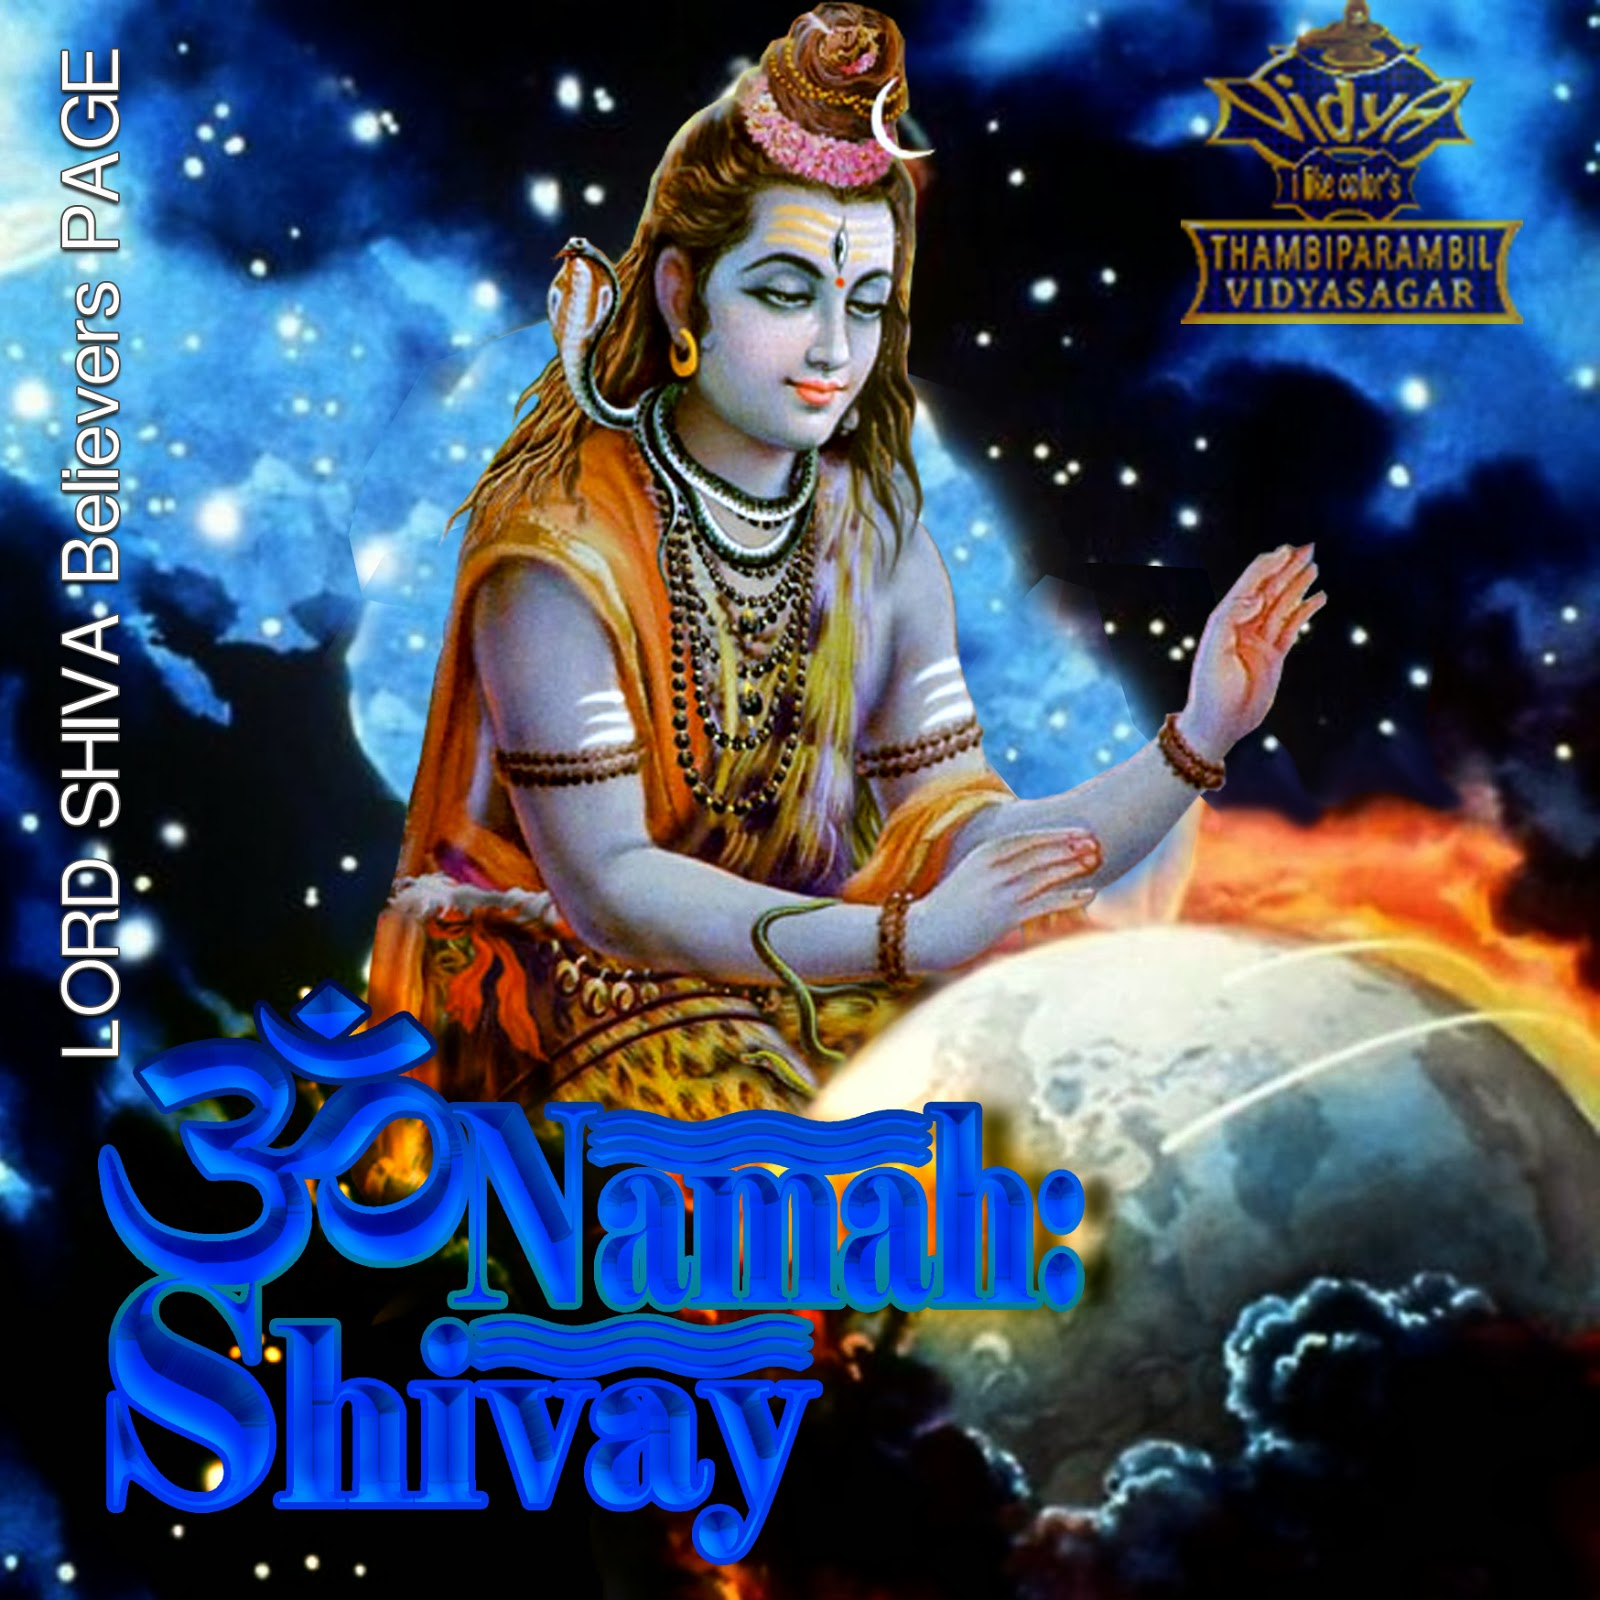 SHIVA: 2014 visit facebook-LORD SHIVA Believers PAGE